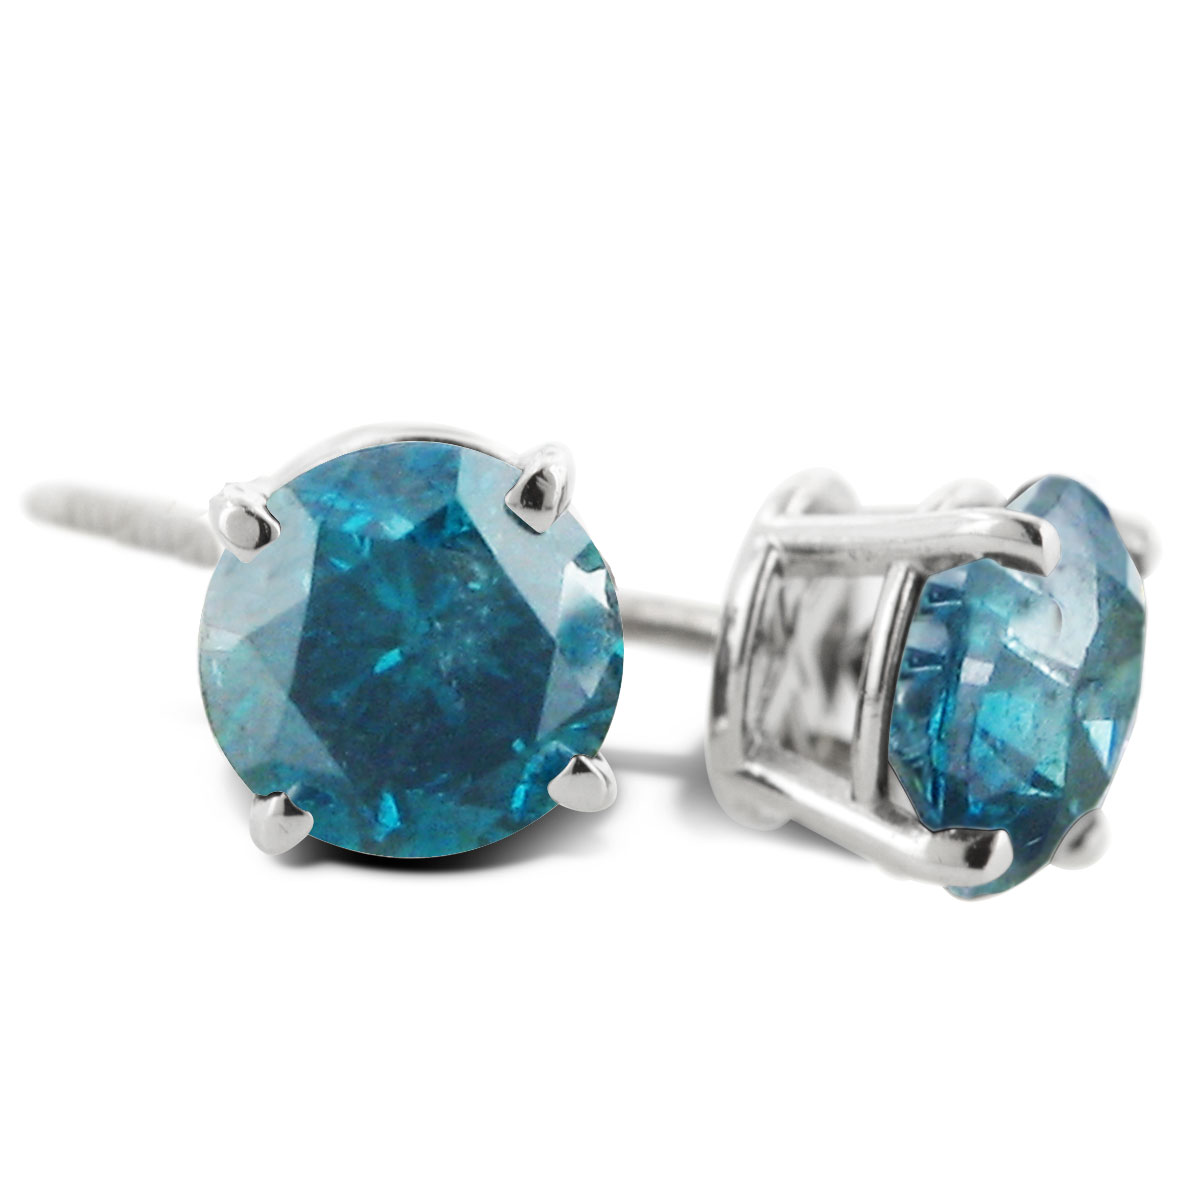 1 Carat Blue Diamond Stud Earrings Crafted In Solid 14 Karat White Gold